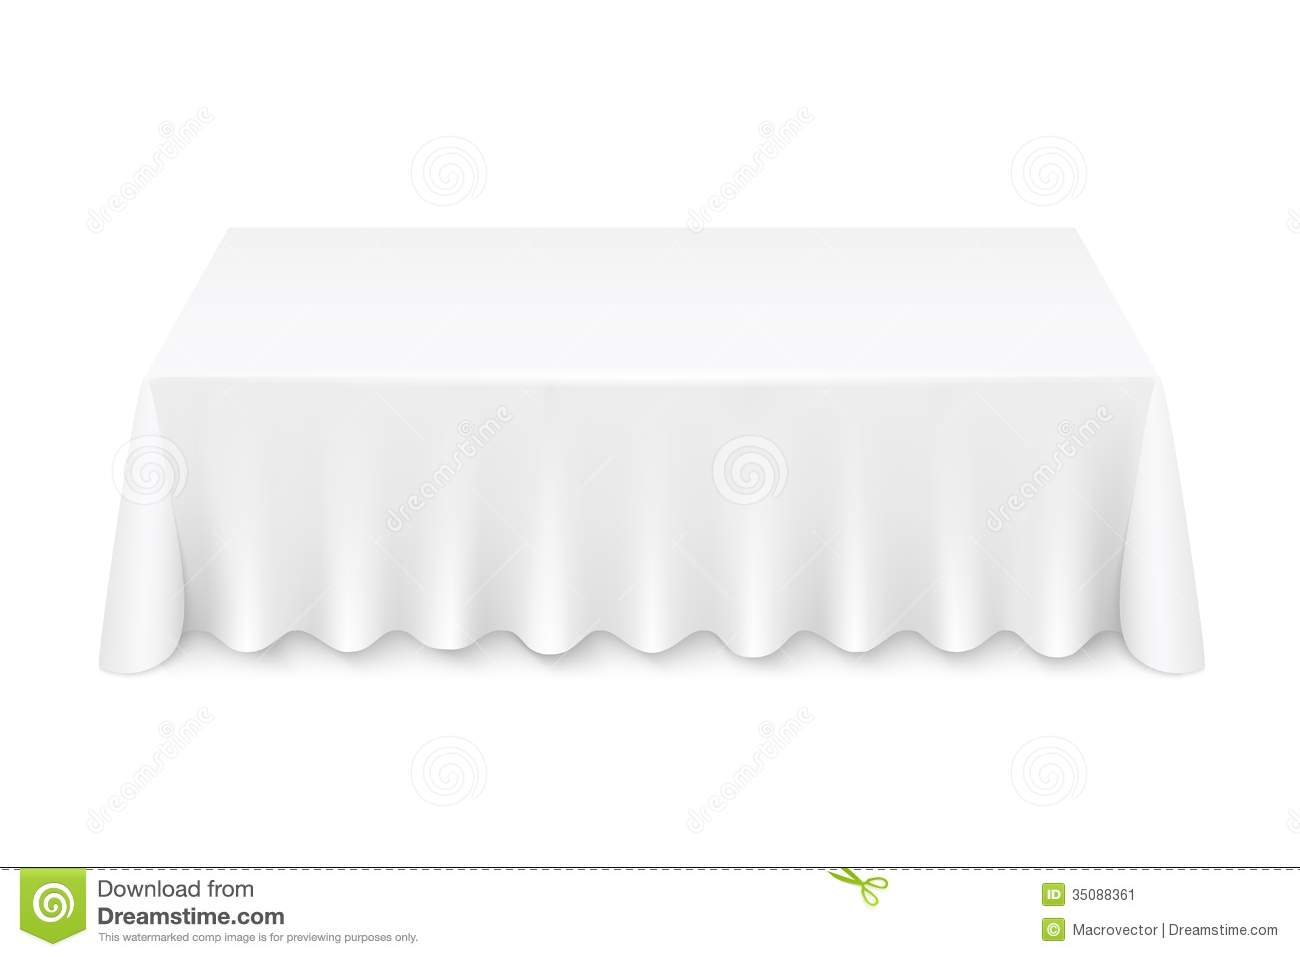 Tablecloth Stock Image Image 35088361 : tablecloth white rectangular table vector illustration isolated 35088361 from www.dreamstime.com size 1300 x 957 jpeg 34kB